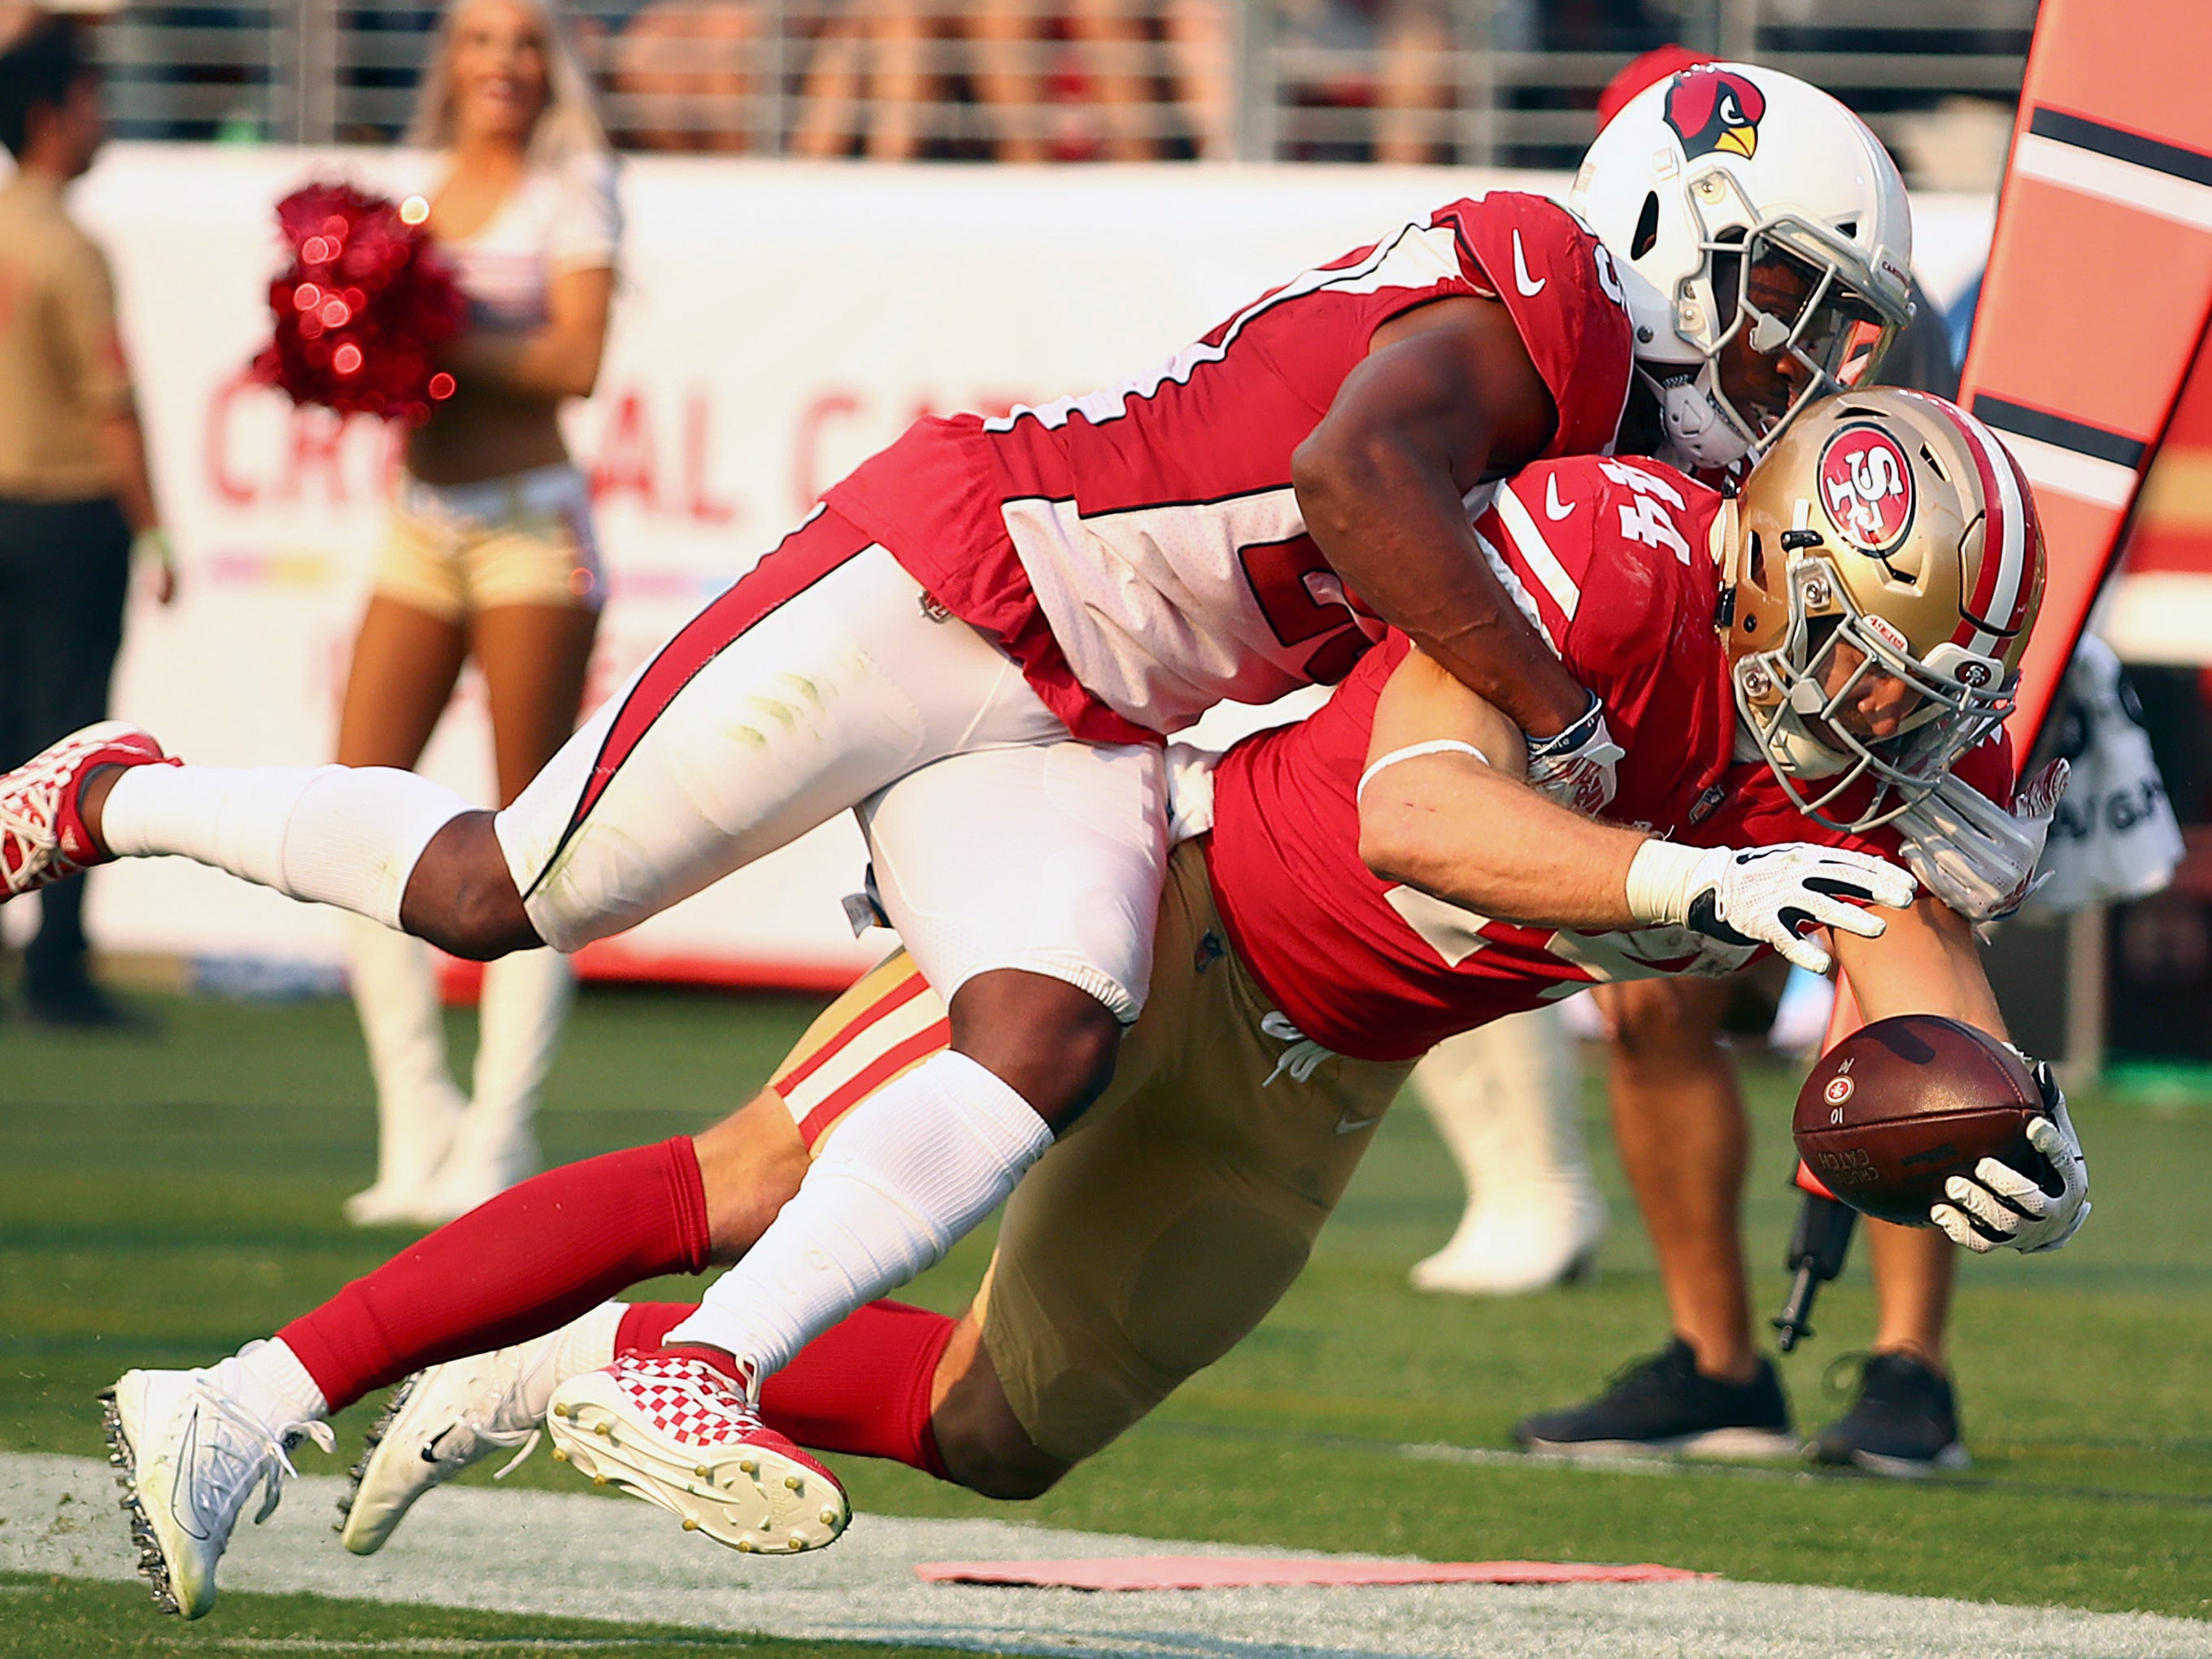 San Francisco 49ers fullback Kyle Juszczyk, bottom, is tackled by Arizona Cardinals defensive back Bene' Benwikere during the second half of an NFL football game in Santa Clara, Calif., Sunday, Oct. 7, 2018.